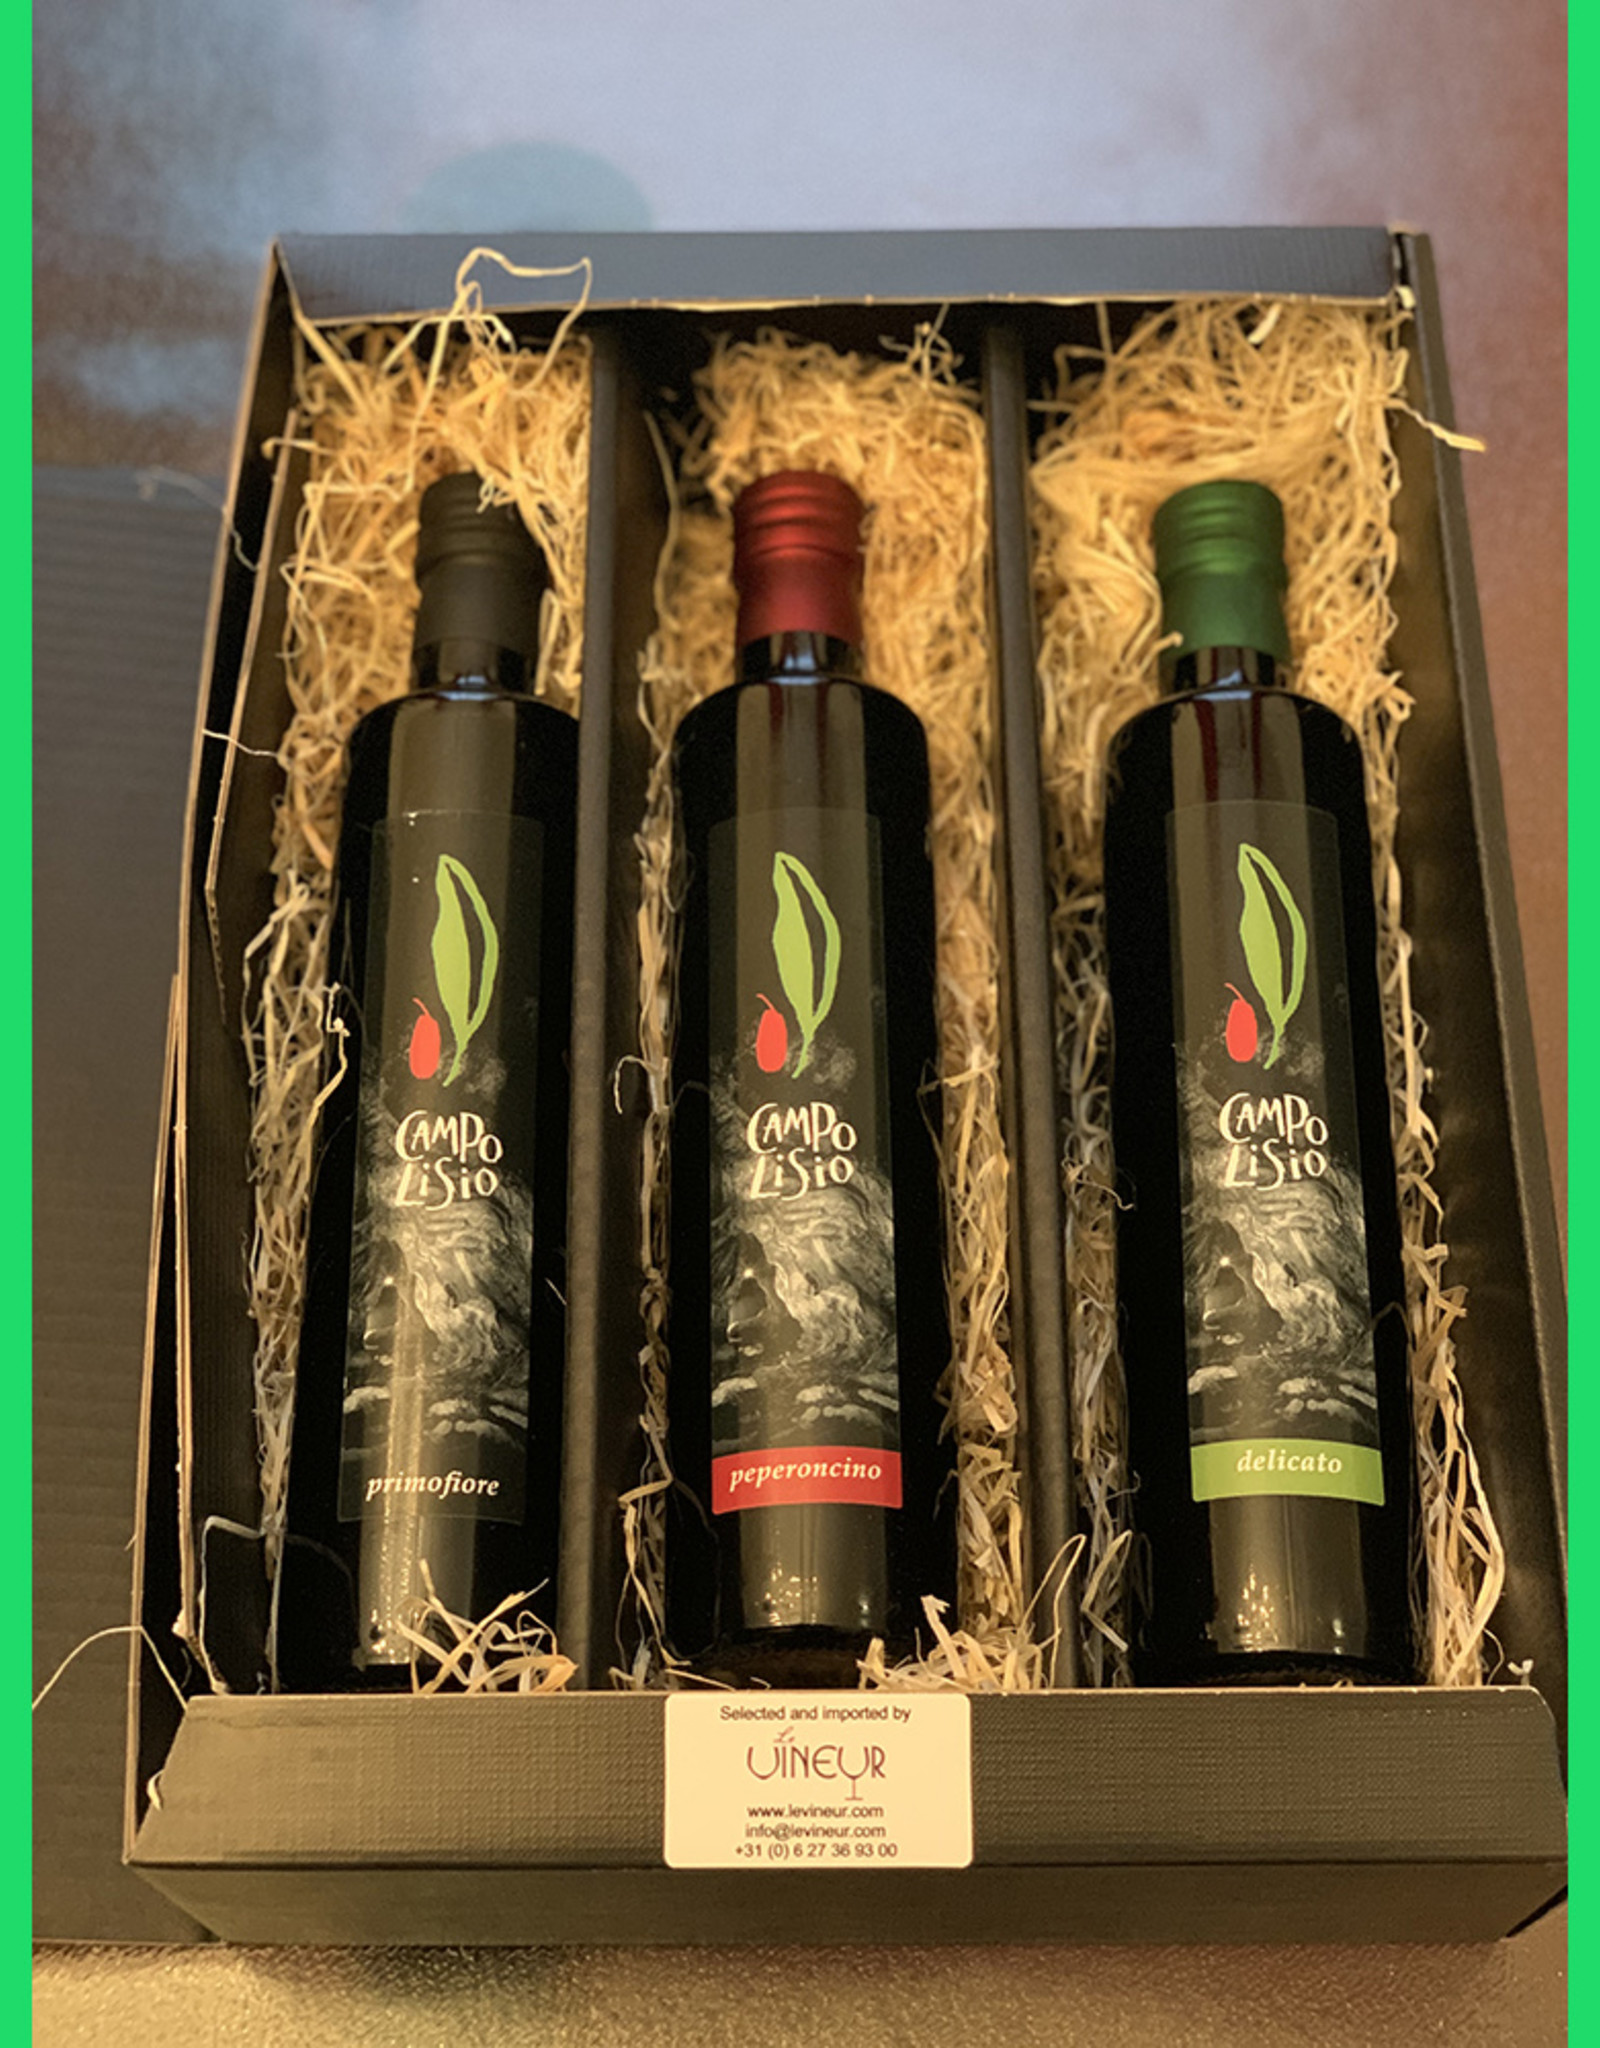 Gift set Campo Lisio biological Olive oil